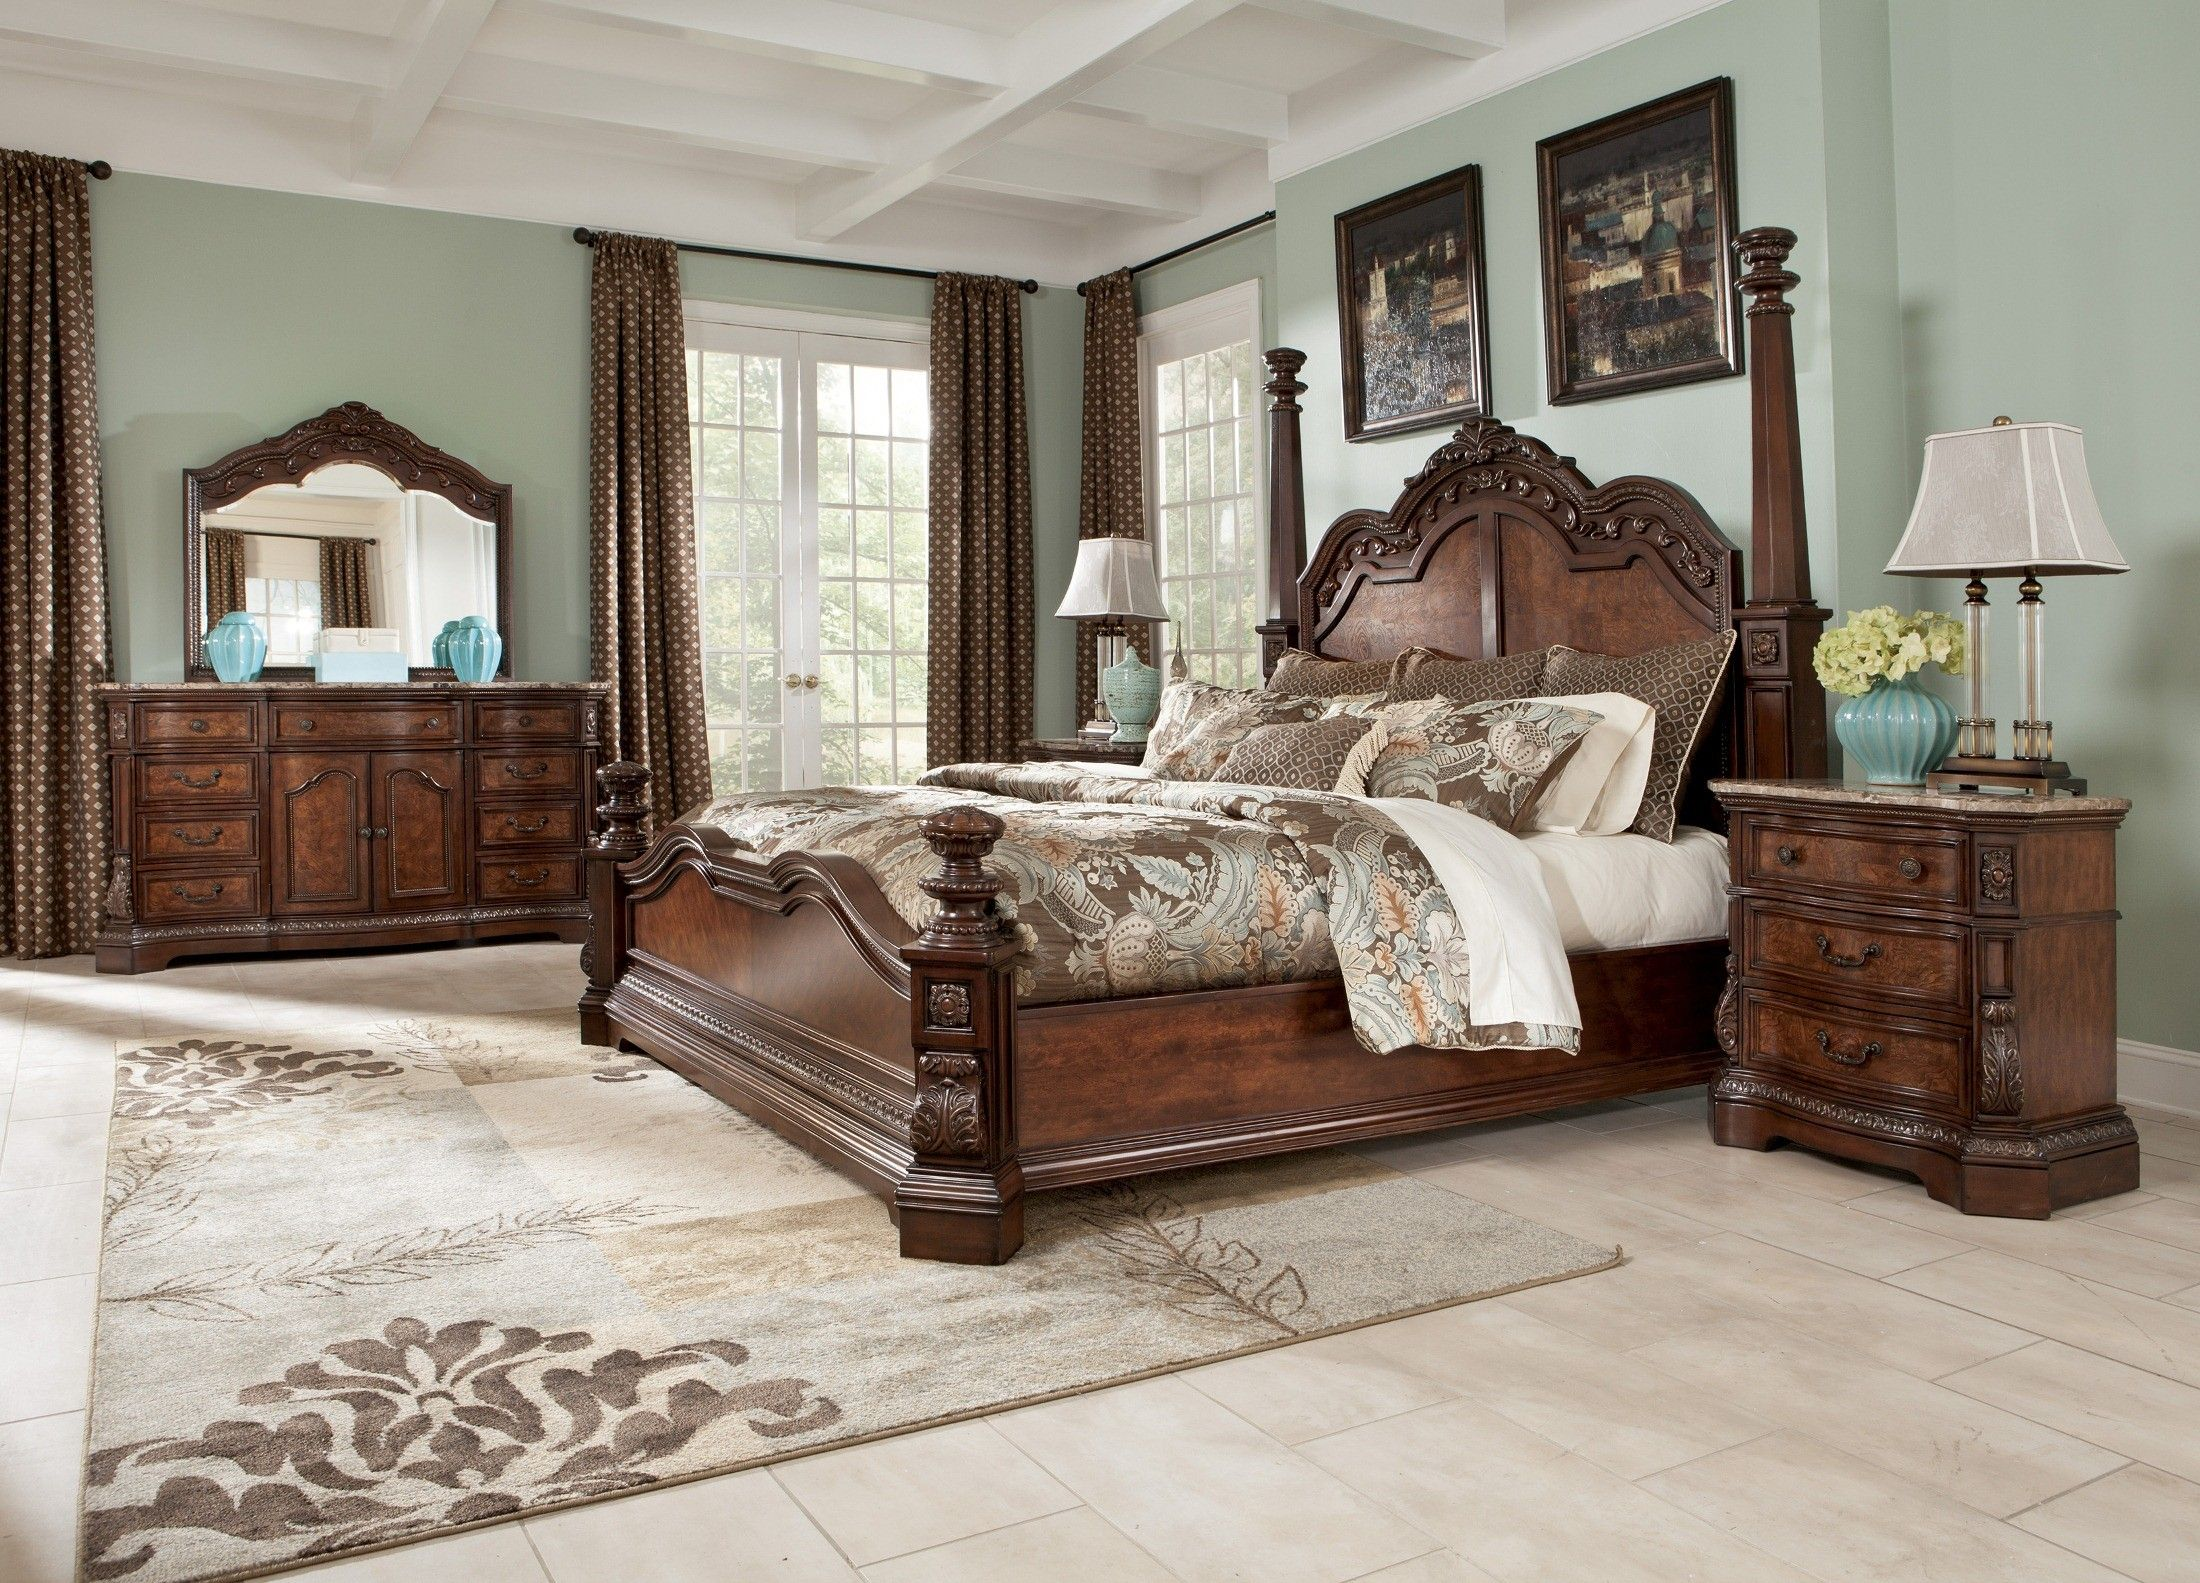 Best Ashley Furniture Cherry Wood 4 Poster Bed King Bedroom 400 x 300